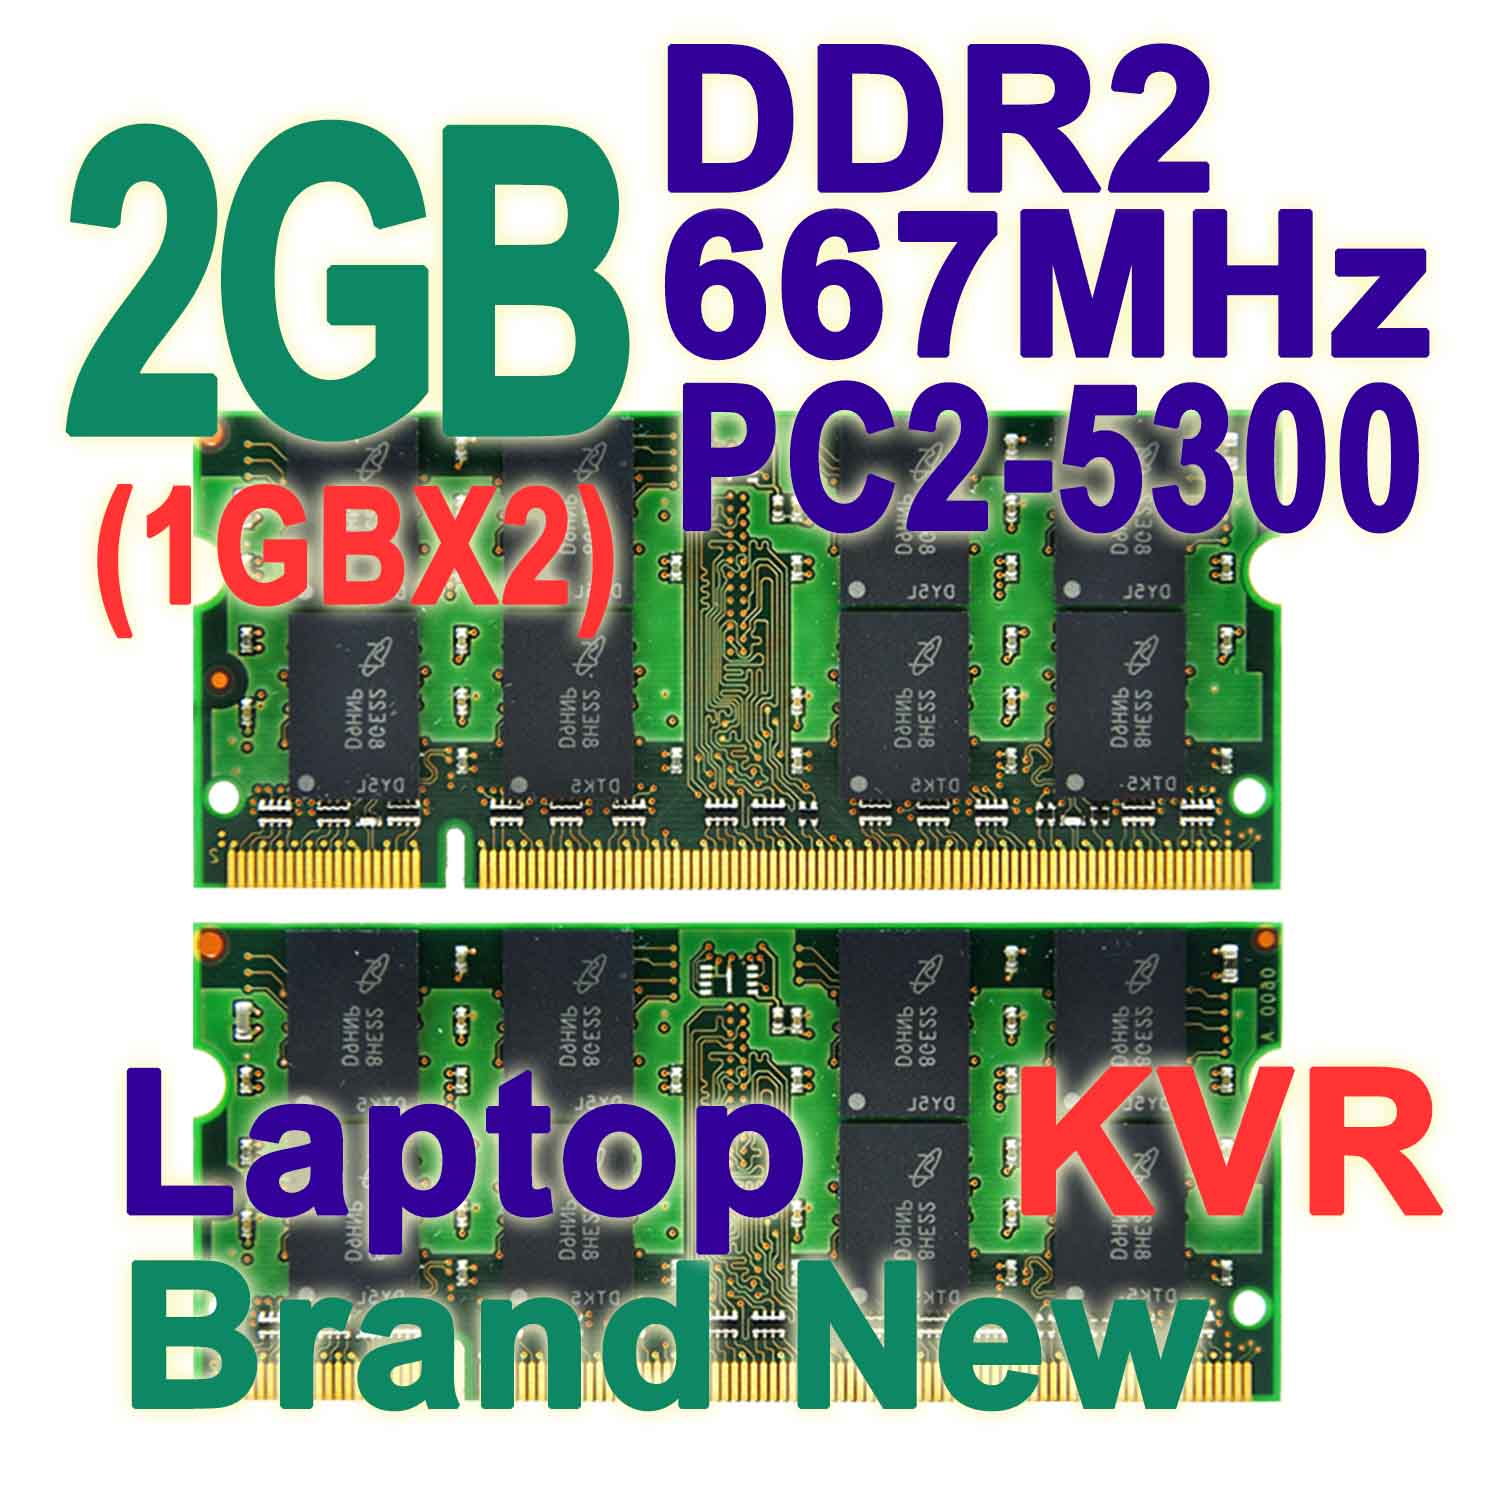 Memoria RAM DDR2 2GB 667 MHz Laptop Kit (1GBX2) Dual Channel 200-pin SODIMM PC2-5300 Non-ECC CL5 For Intel &amp; AMD Notebook KVR<br><br>Aliexpress